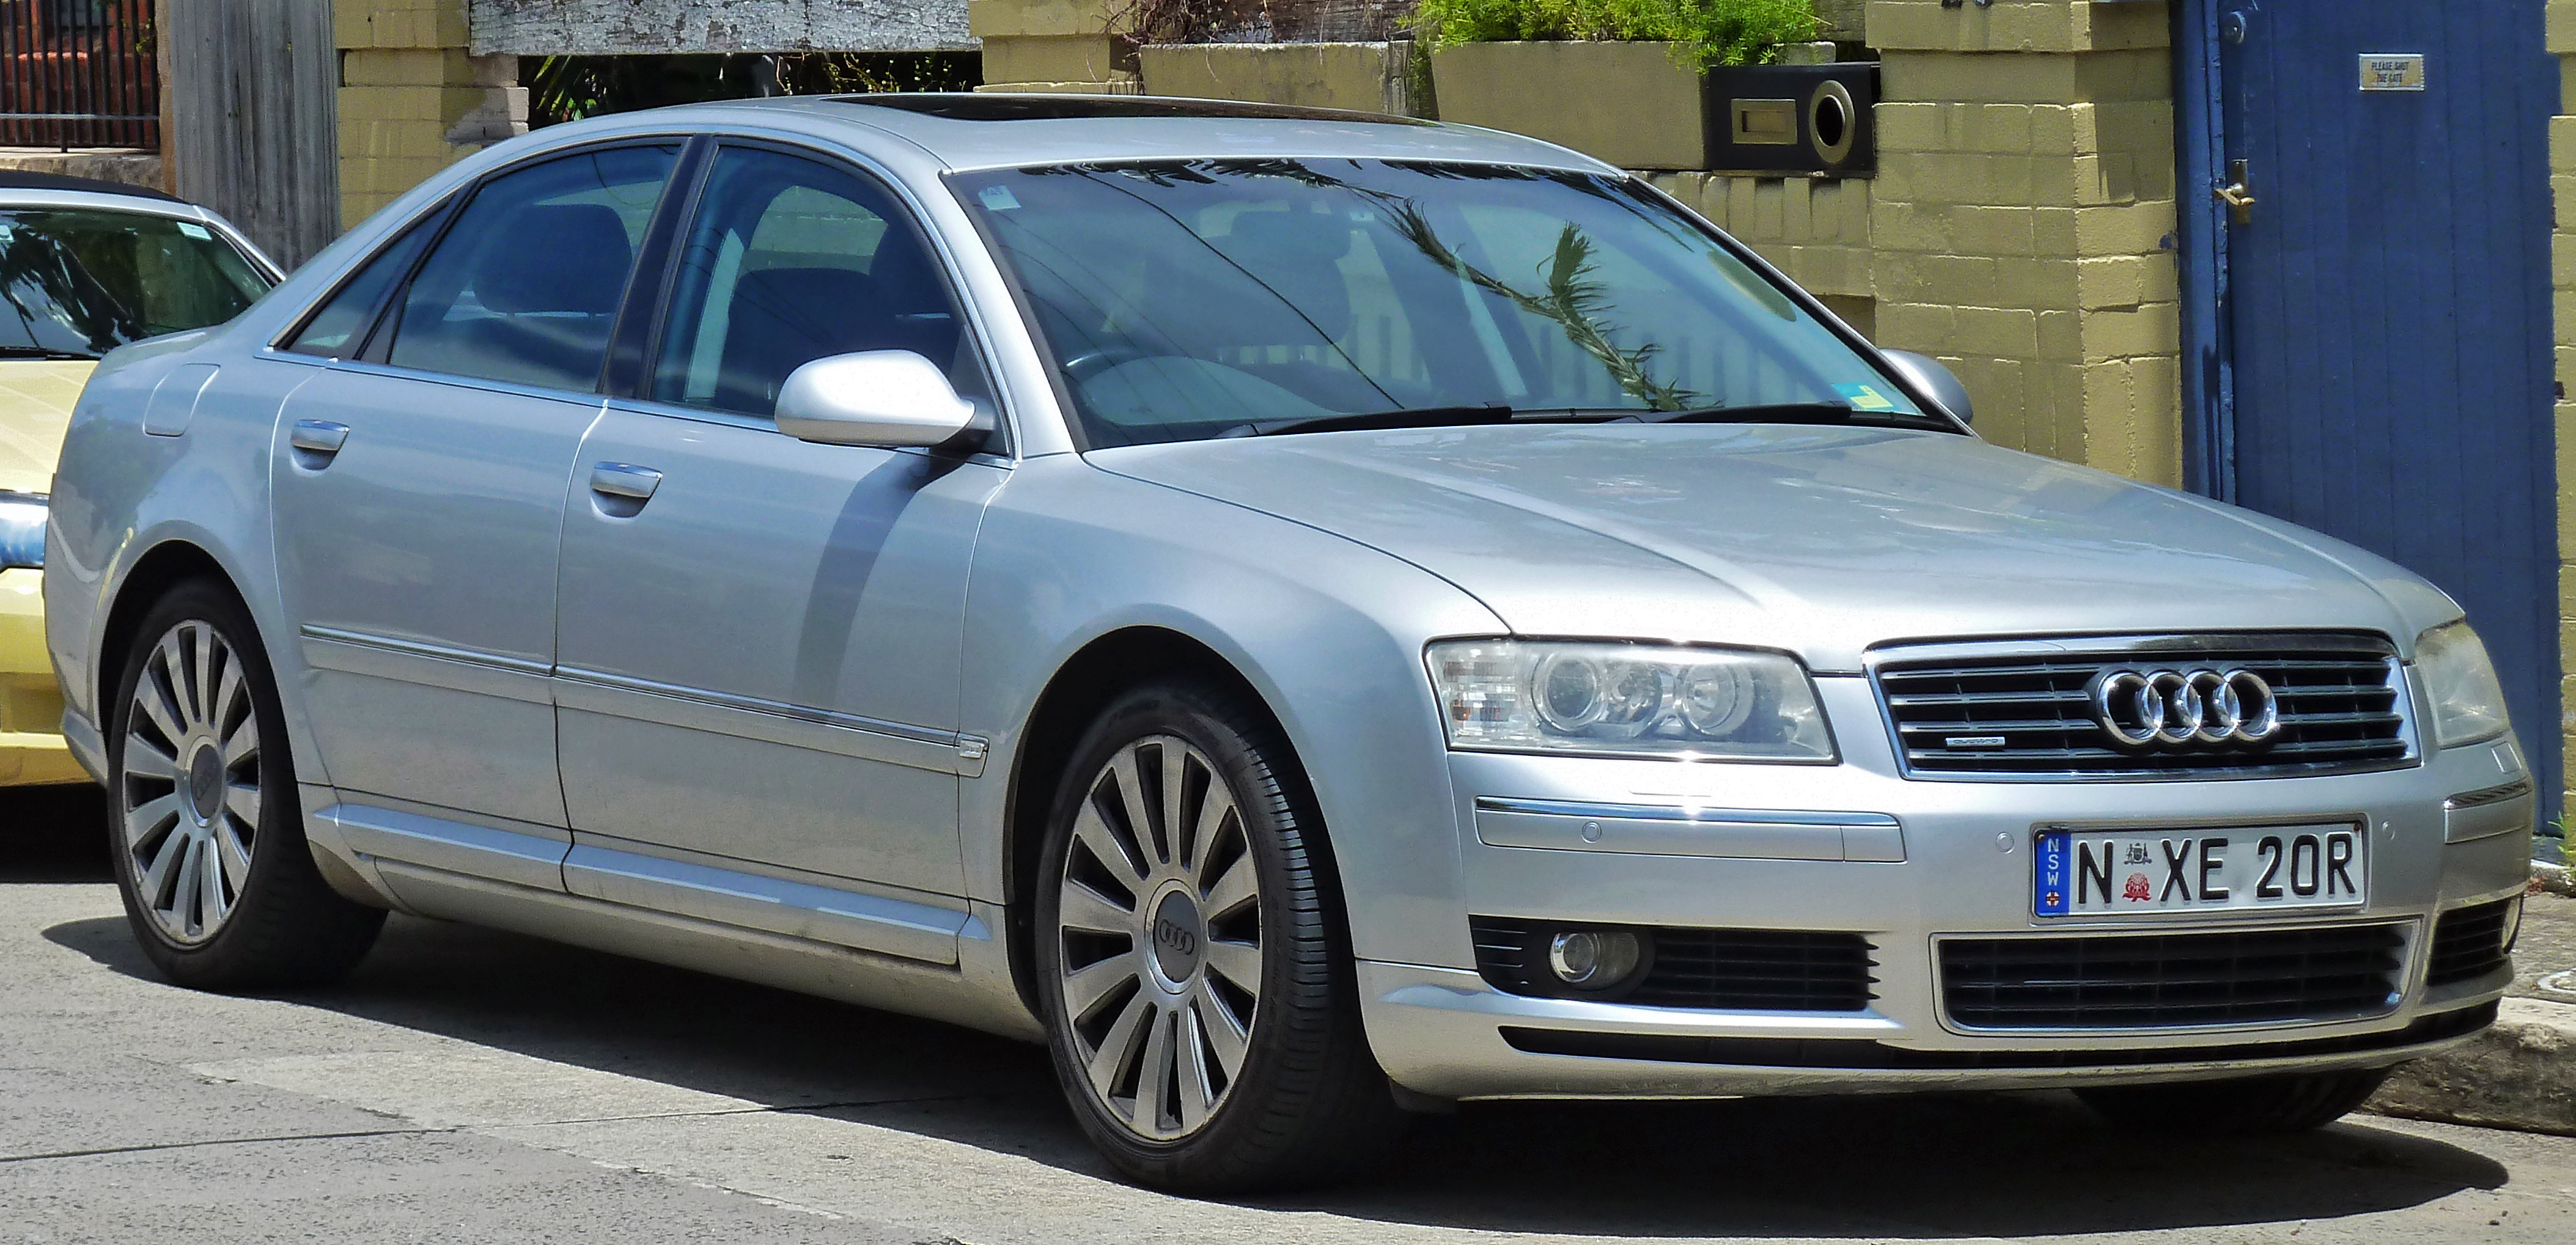 Audi A6 37 2003 Technical Specifications Interior And Exterior Photo 2005 Fuse Box 9